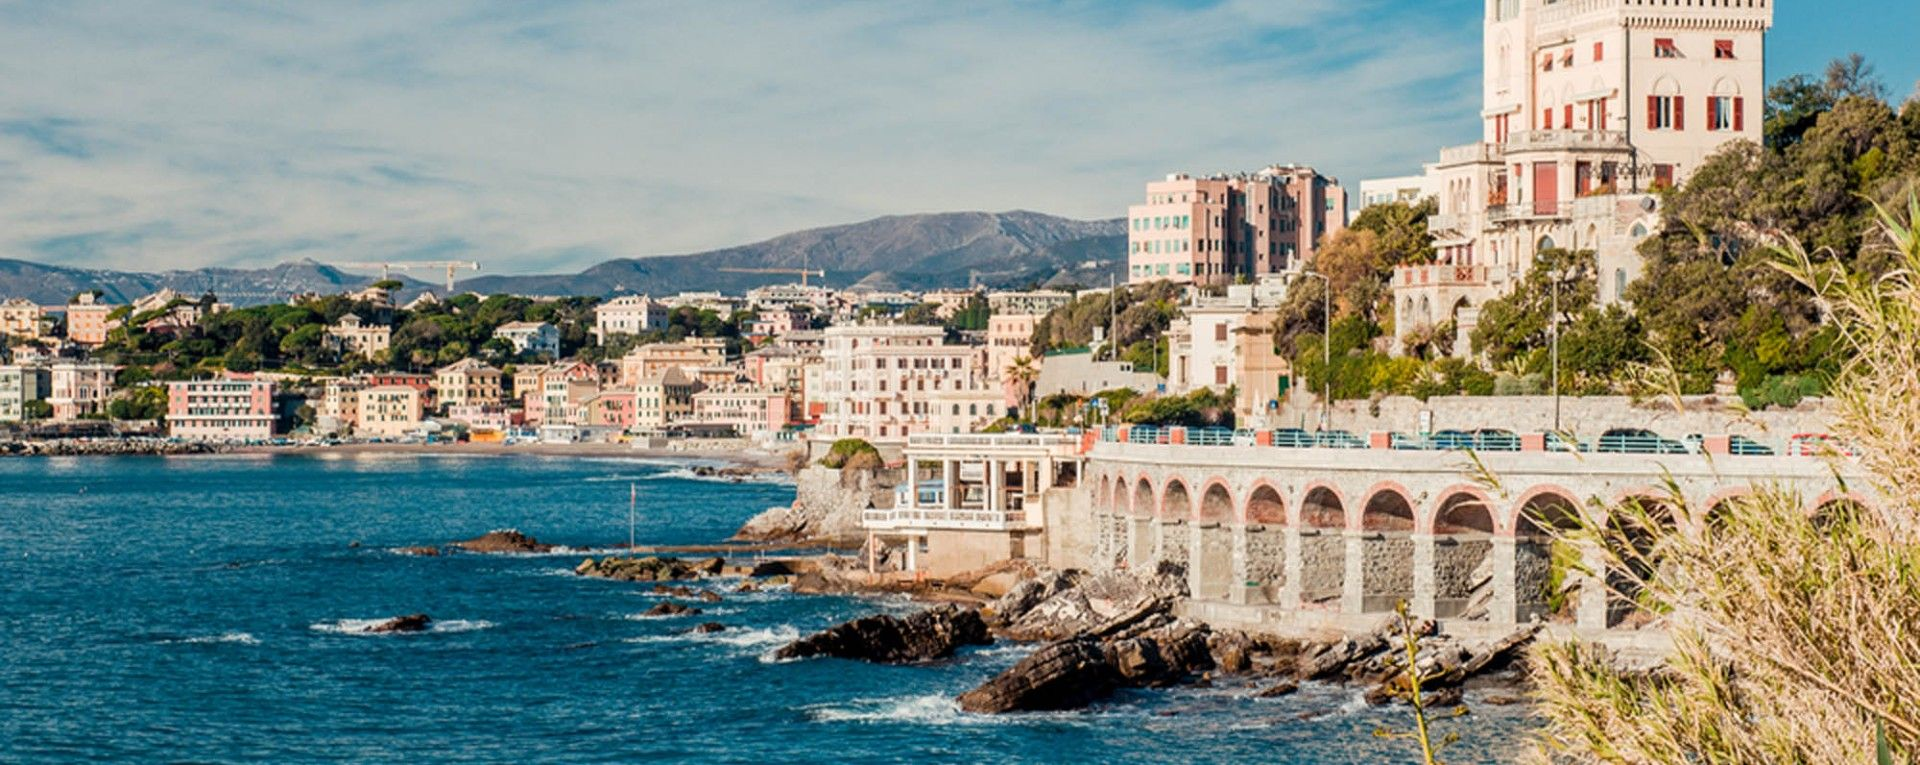 Luxury short breaks in genoa 2019 kirker holidays - Office tourisme italien a paris ...